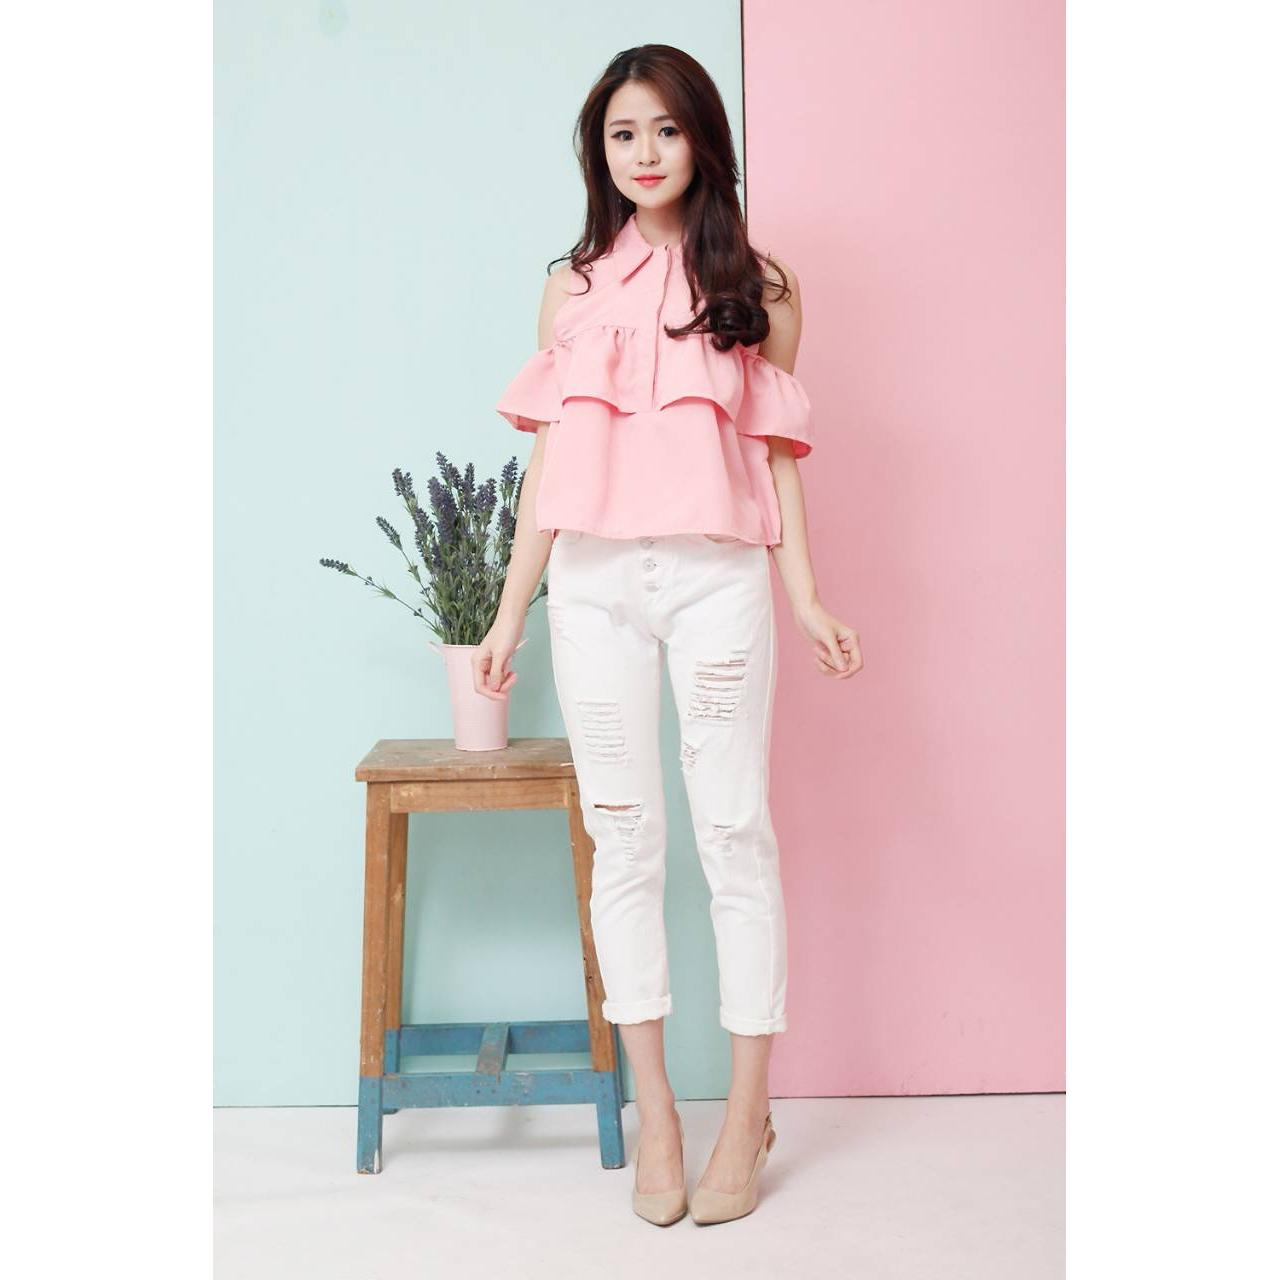 Korean Style Cut Out Top Sabrina Baju Wanita Murah Elevenia